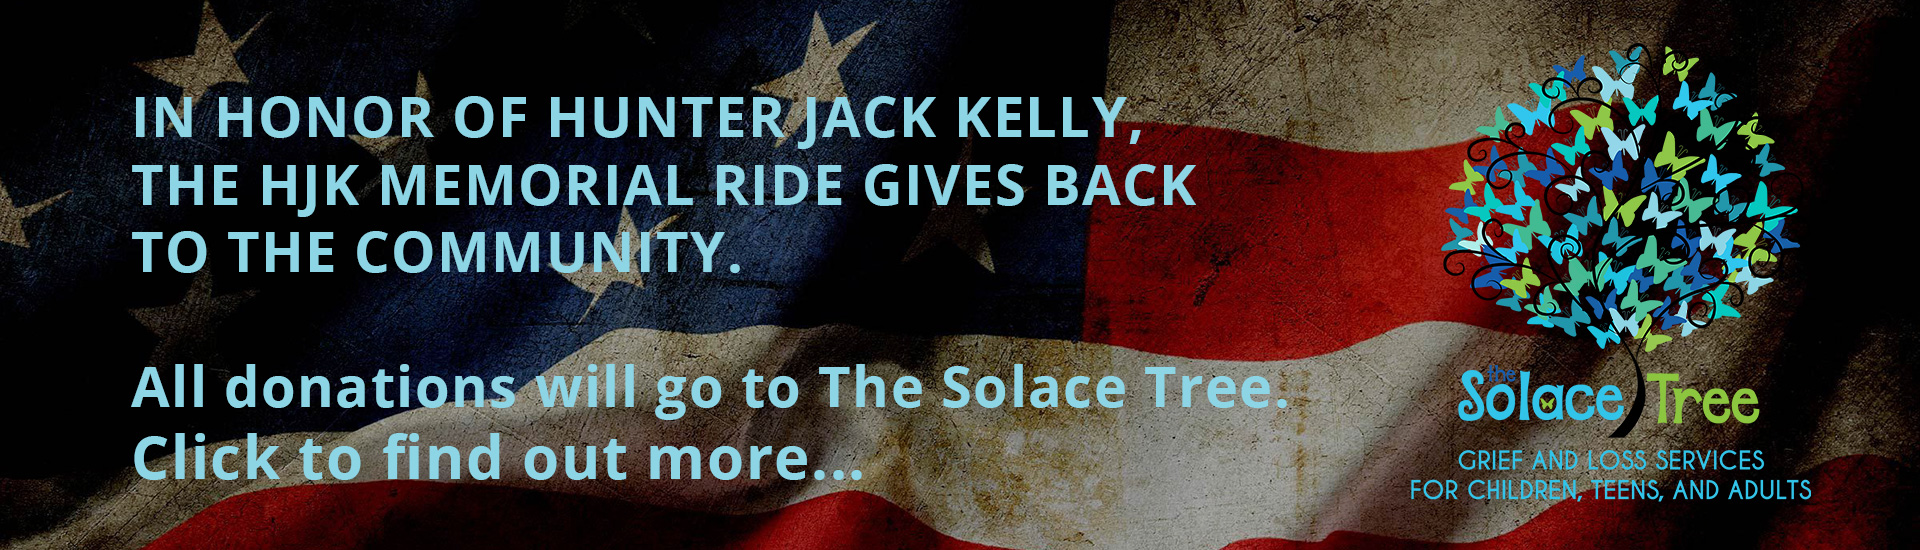 3rd Annual HJK MEMORIAL RIDE Benefits The Solace Tree 9-14-2019